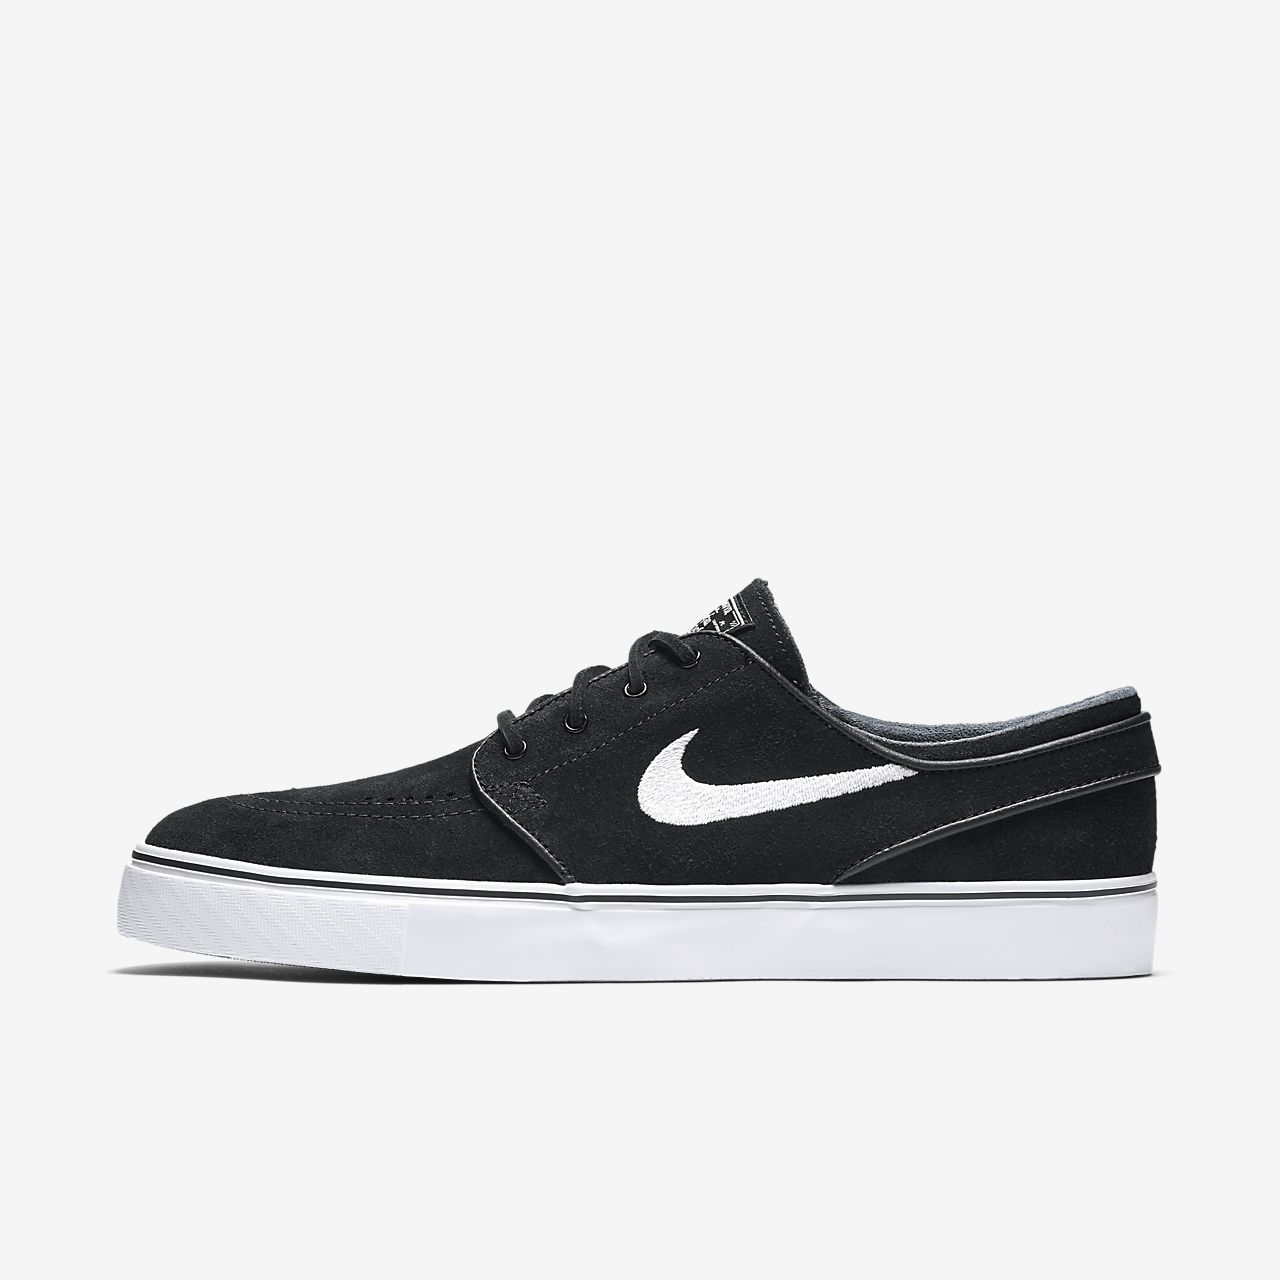 sale hot sale clearance low price Nike SB Zoom sneakers AX5G9dsp